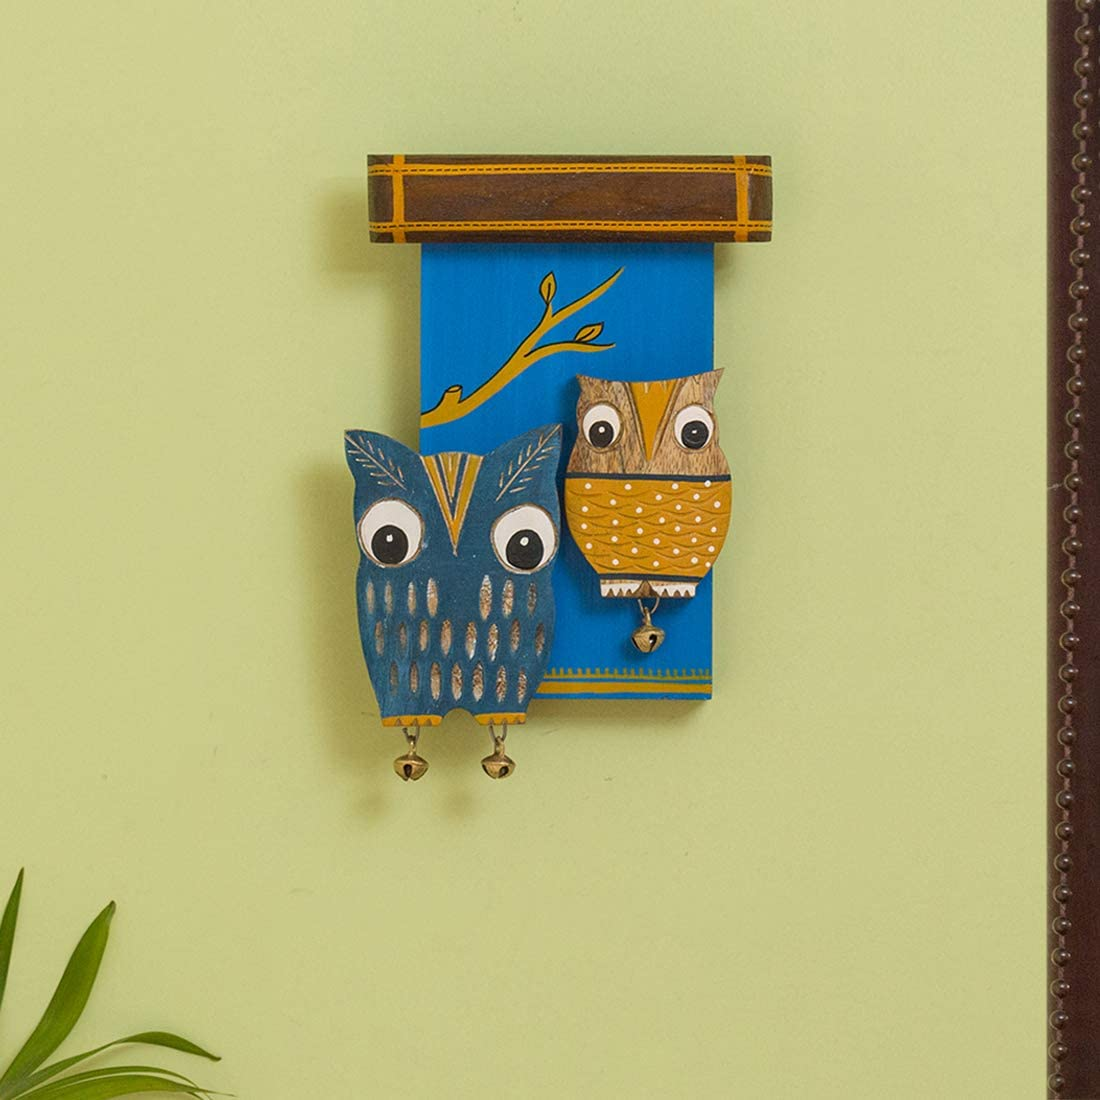 ExclusiveLane 'Owl Siblings' Wooden Wall Décor - Wall Hanging Décor for Living Room Bedroom Home Decoration Wall Decoration Items Wall Decore Home Décor